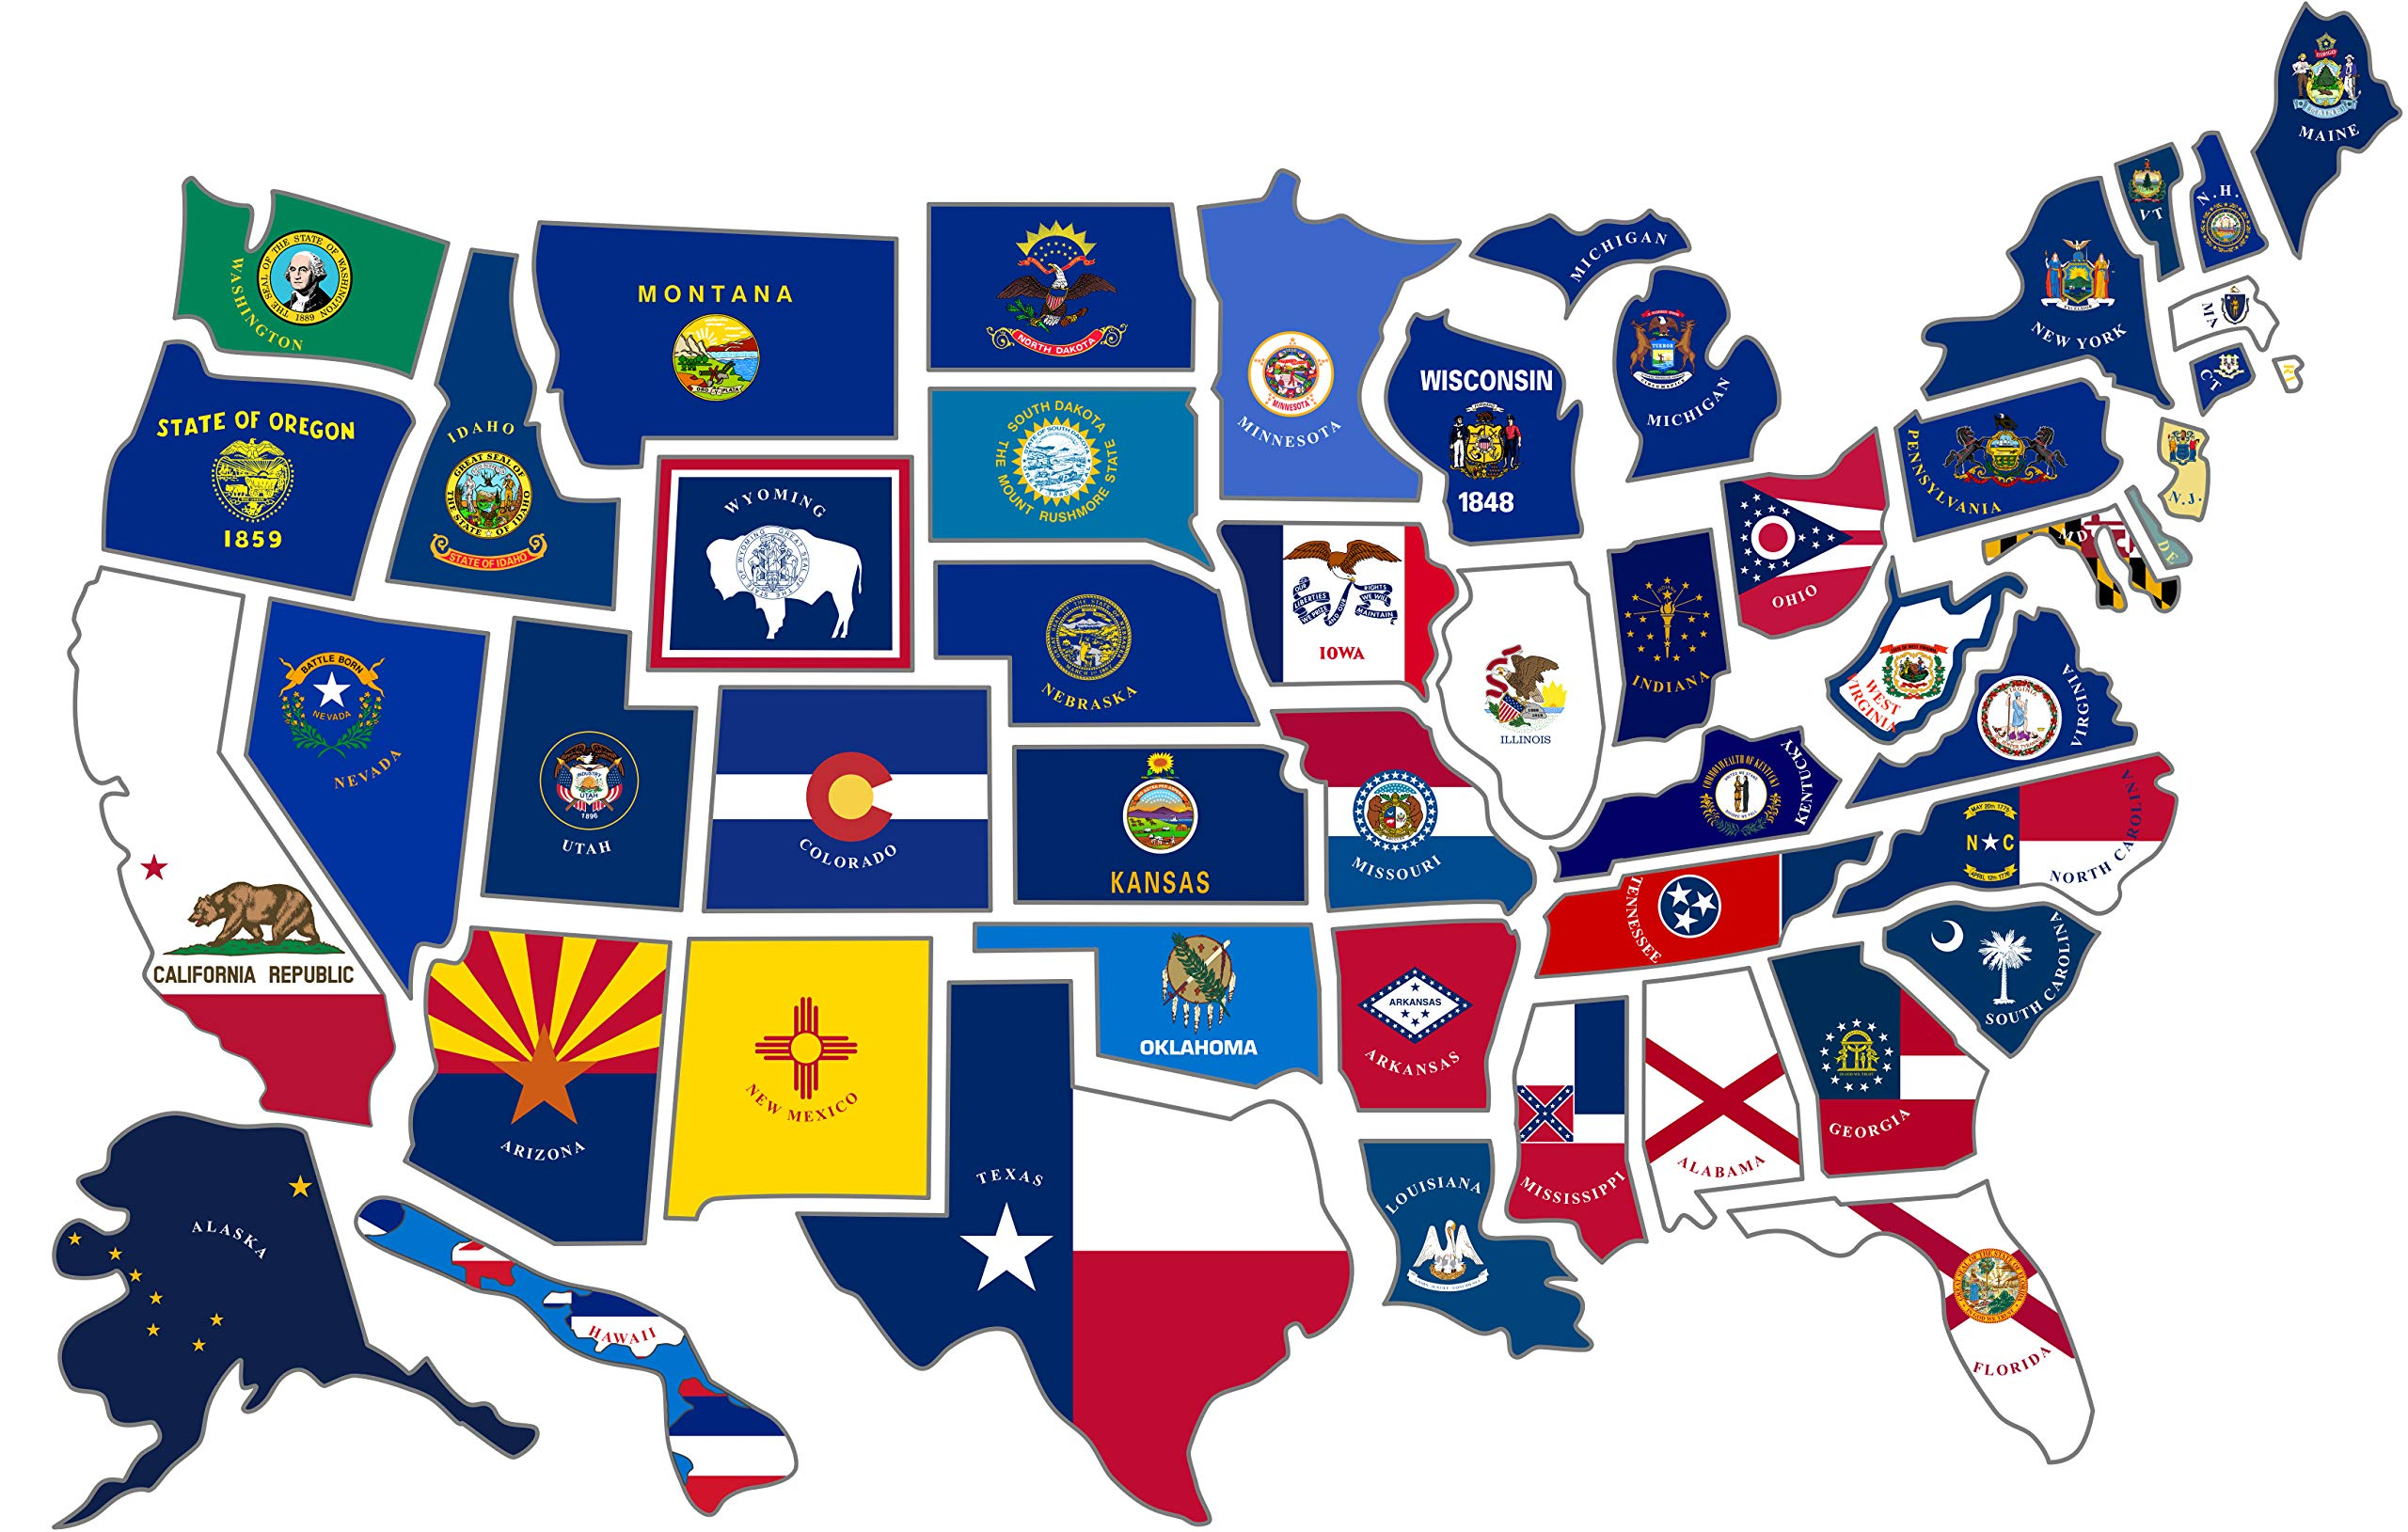 RV State Sticker Travel Map    14'' x 22''   50 - USA States Flag Visited Decal    USA Road Trip Window Stickers    Motorhome Camper Trailer 5th Wheel Accessories